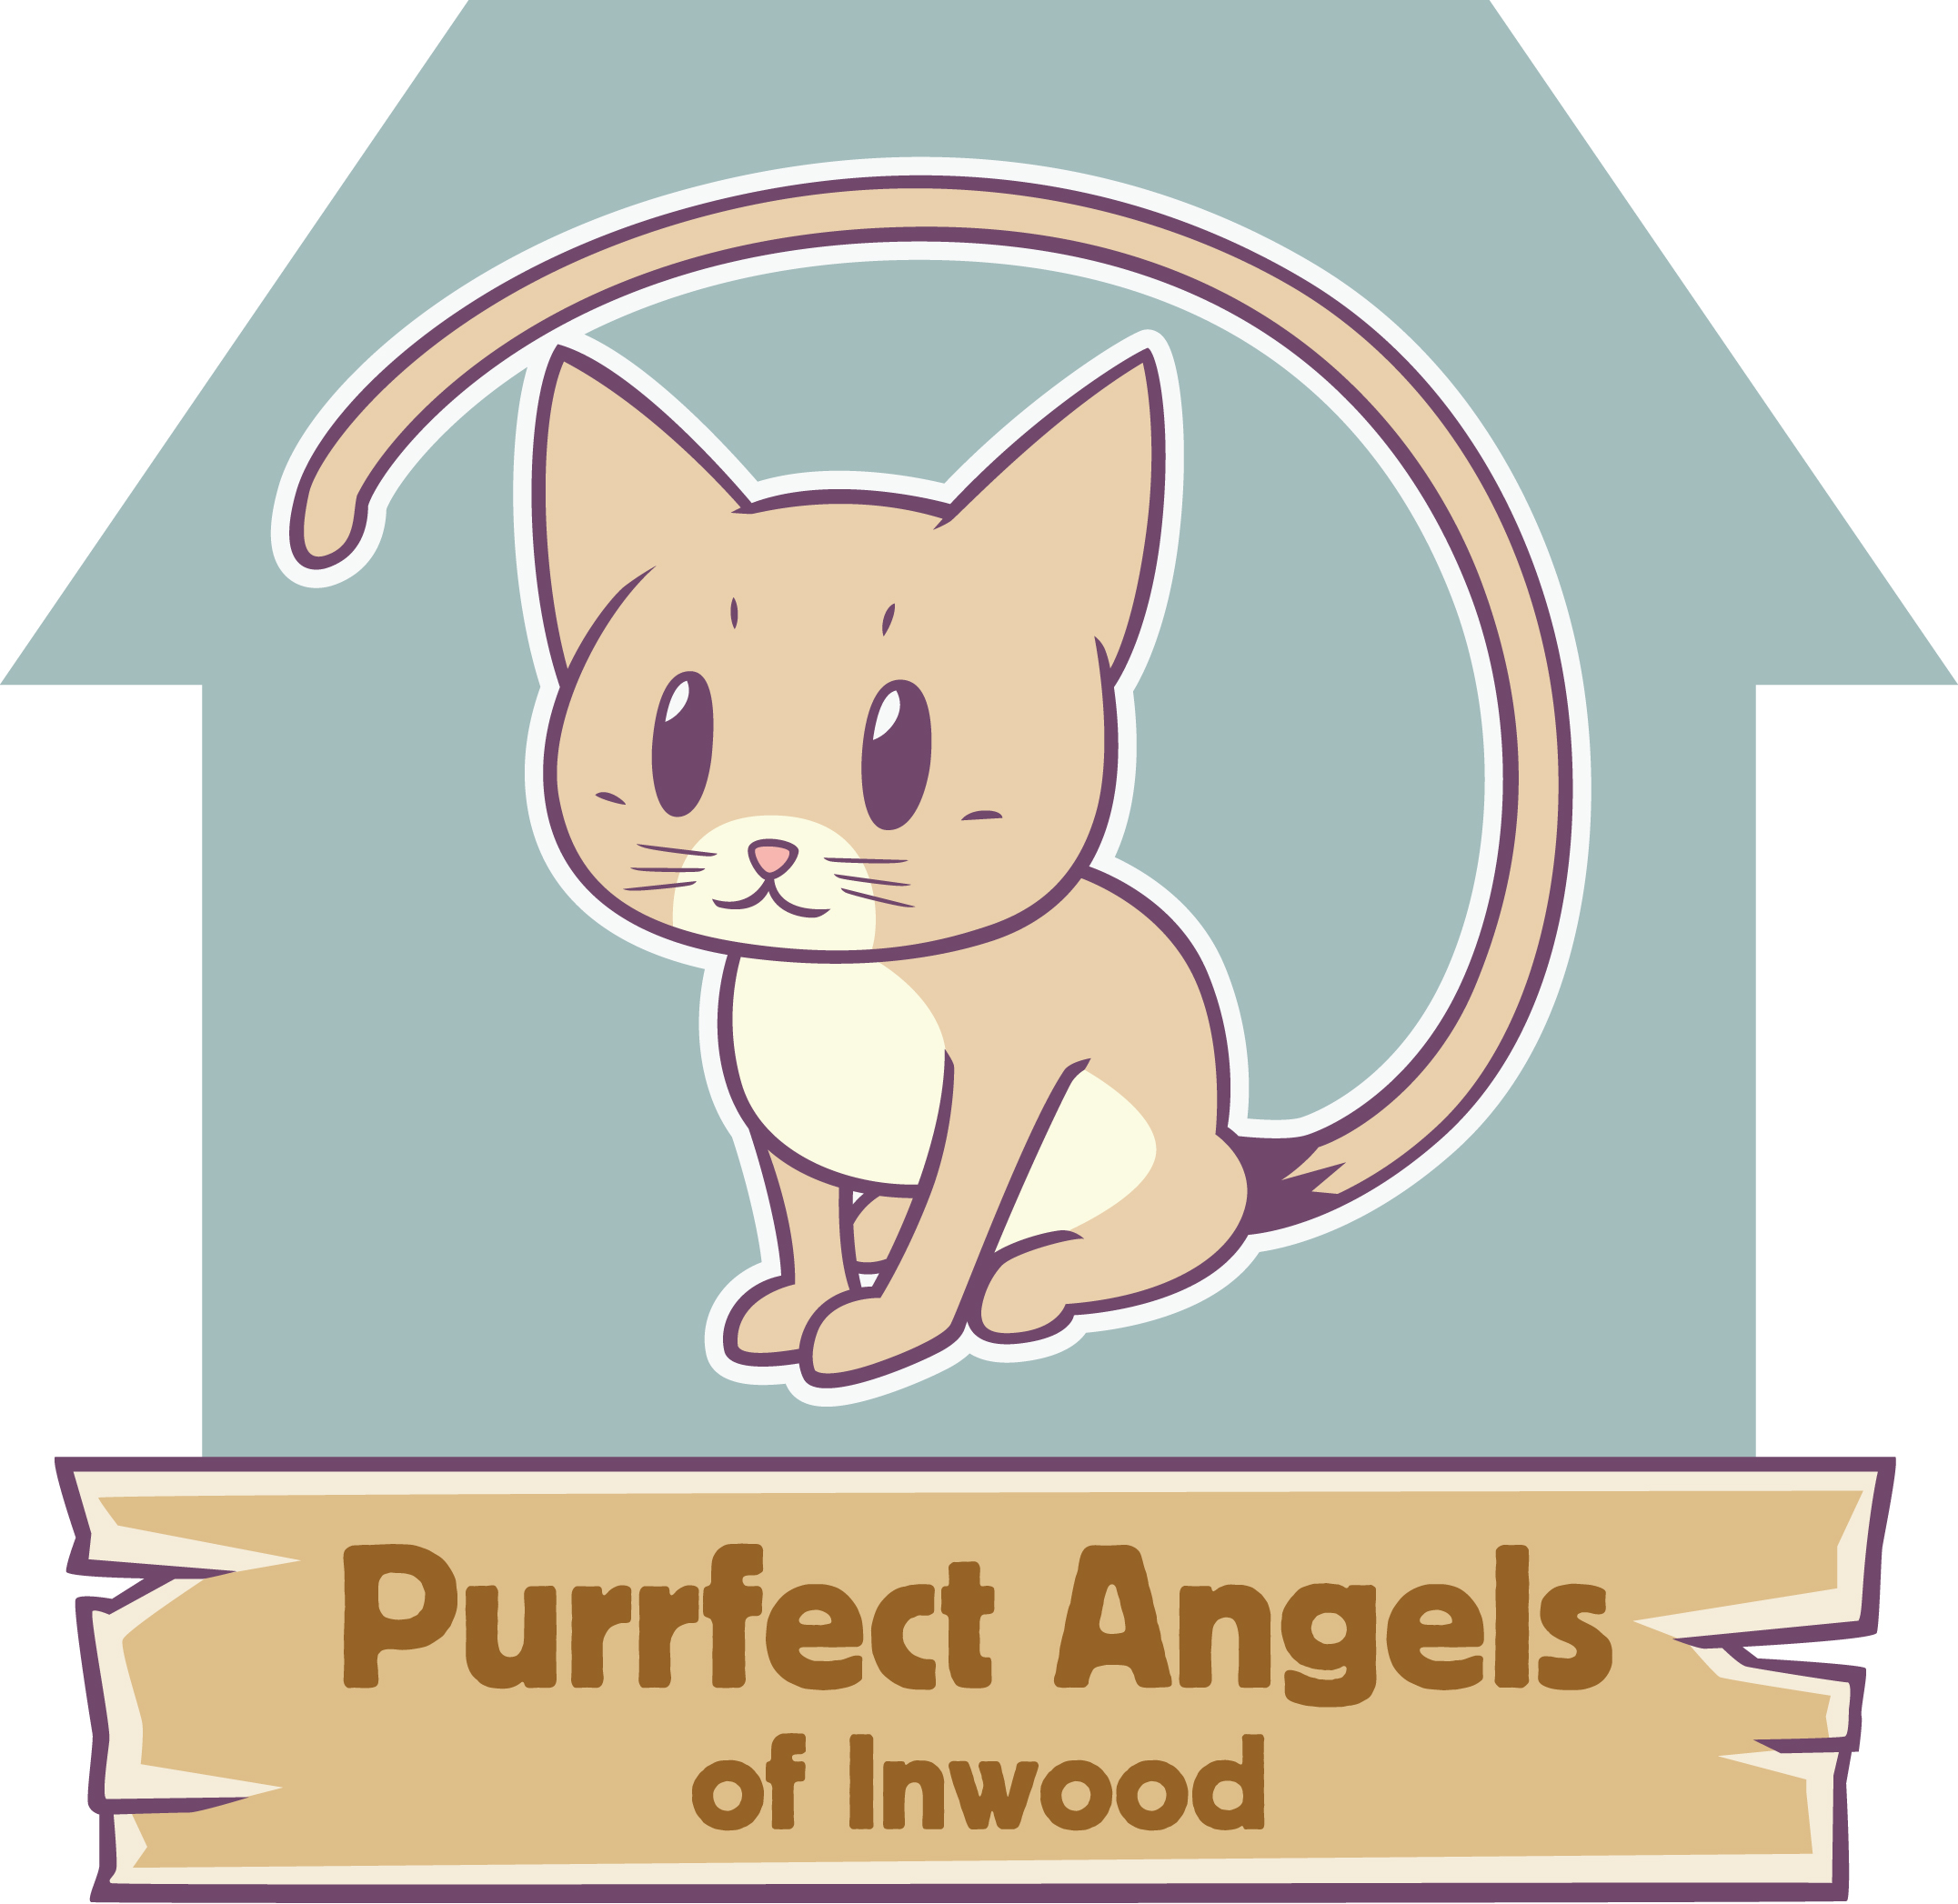 Purrfect Angels of Inwood